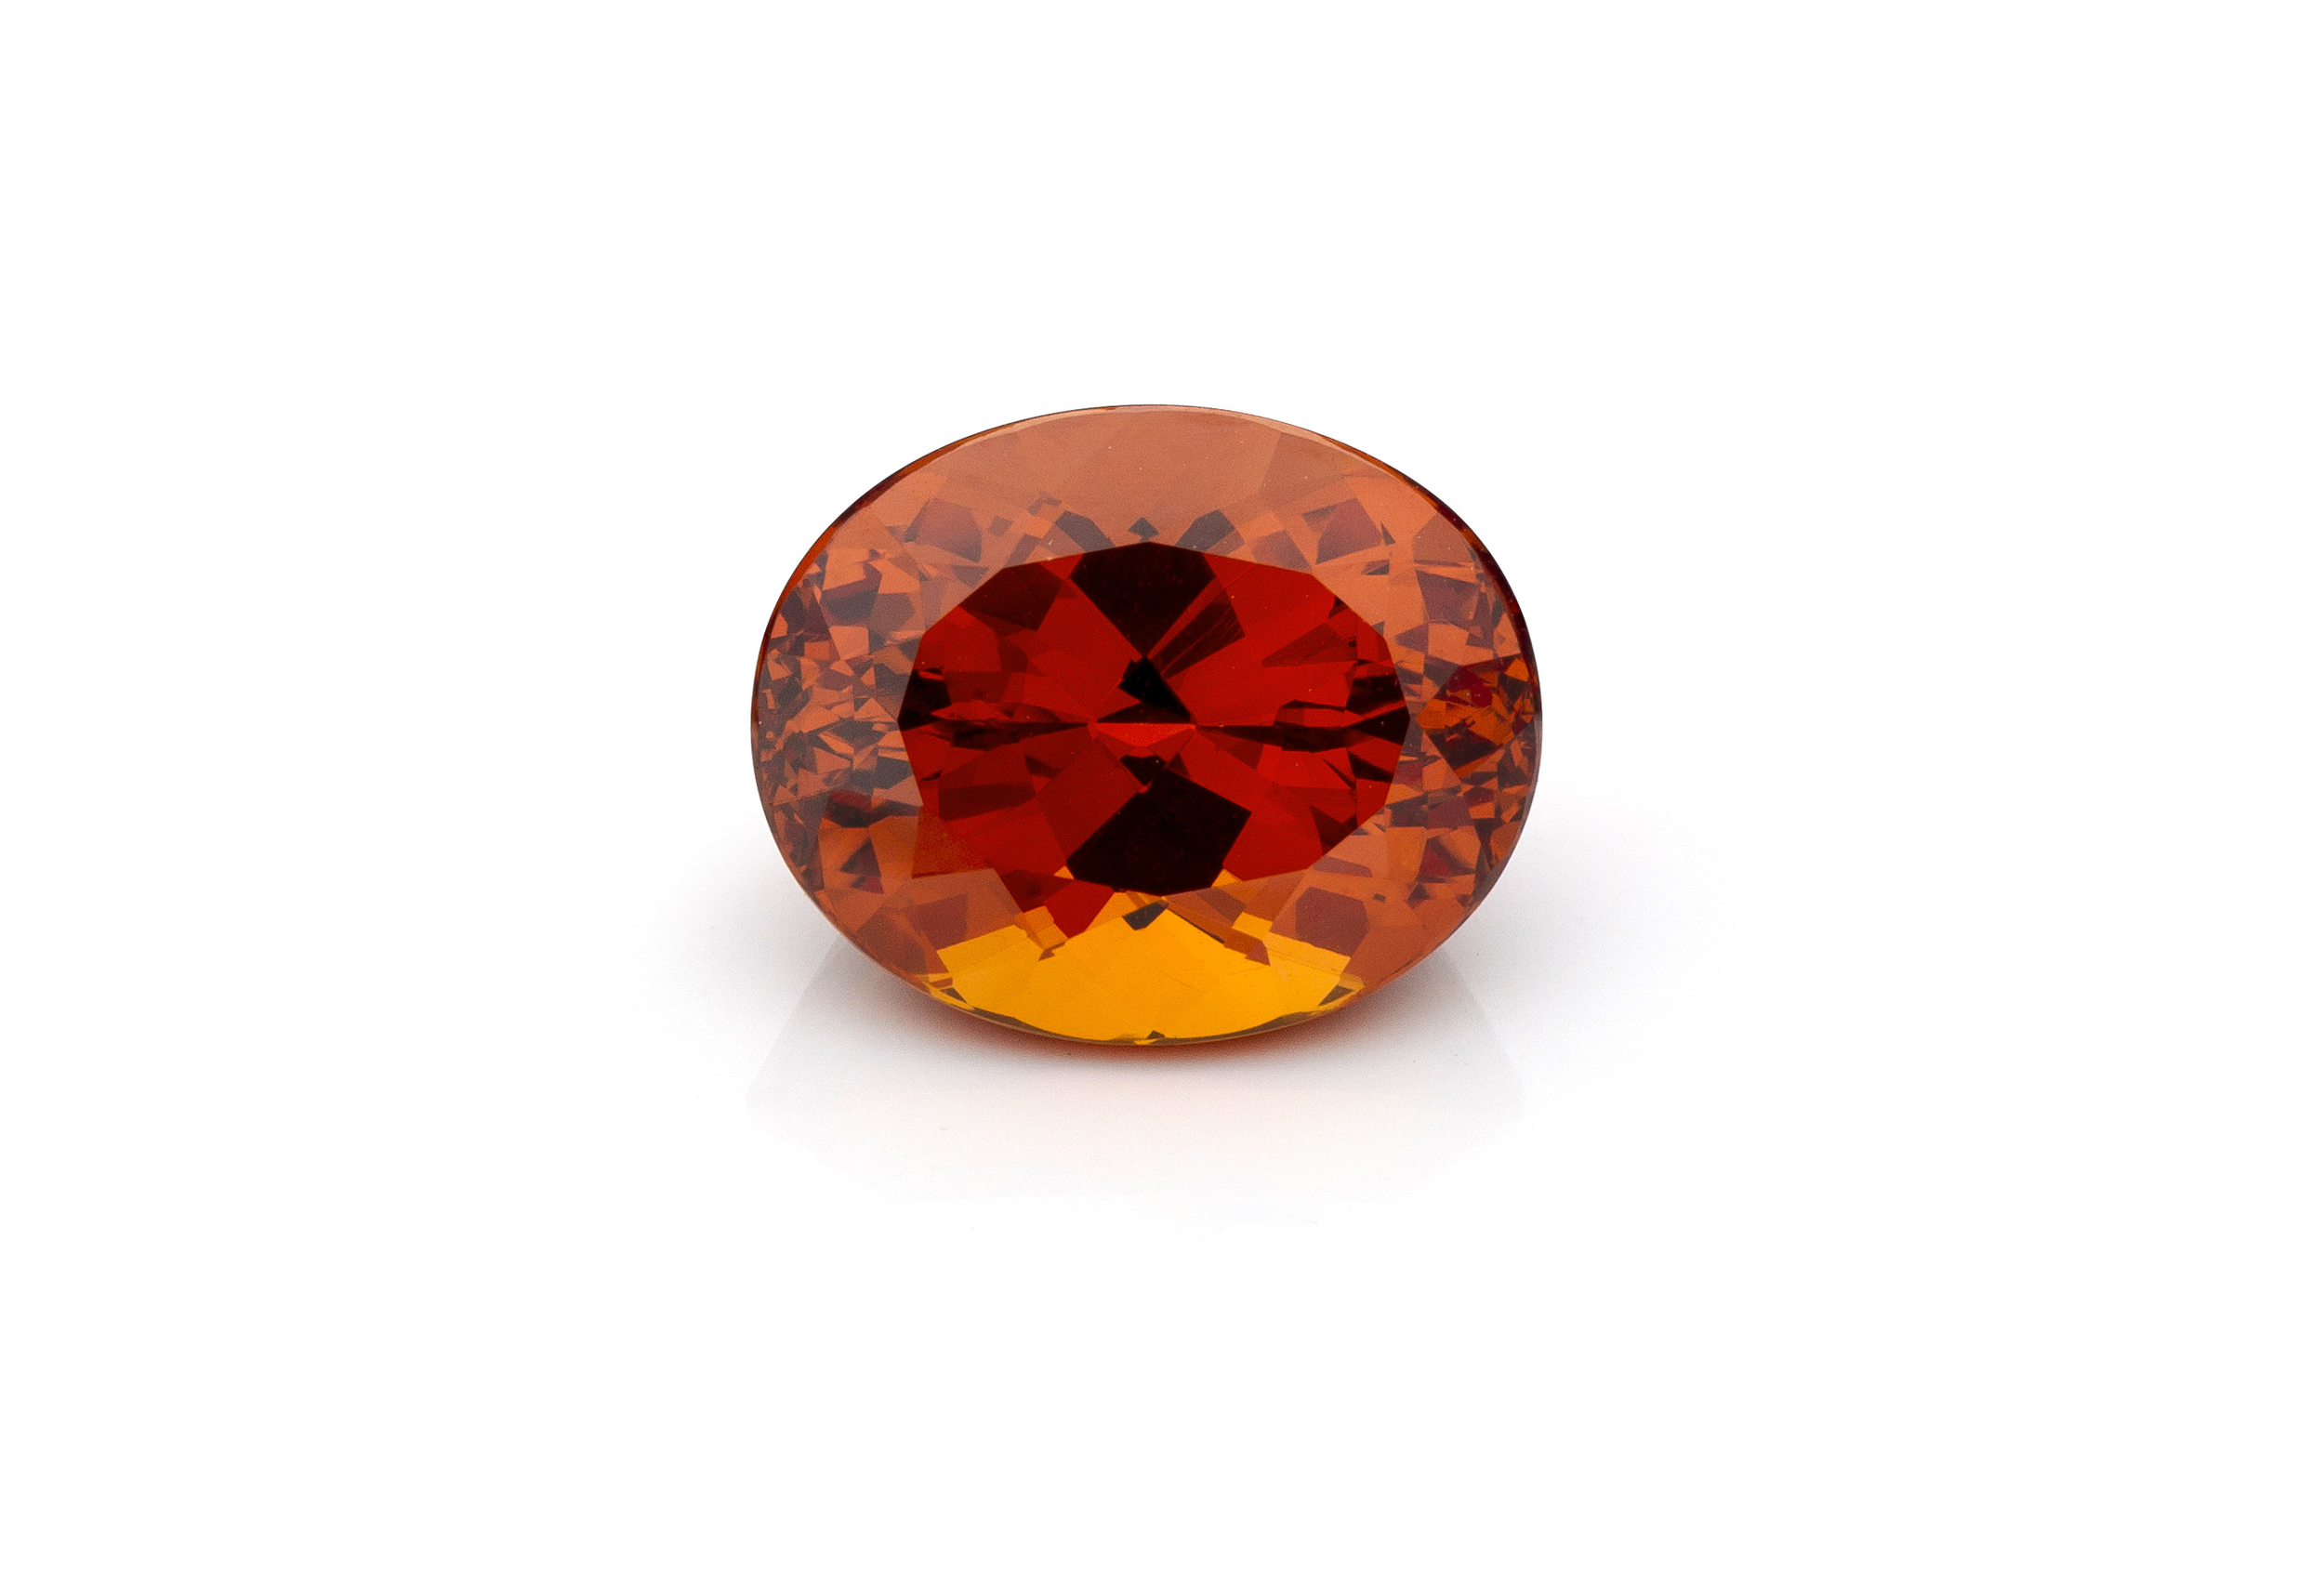 Nigerian Mandarin Garnet     Mandarin Spessartite Garnet is a rare orange garnet, referred to as Mandarin for its orange color. The combination of color and garnet's high refractive index make mandarin garnet one of the most brilliant stones in the world of colorstones. Pure orange known as fanta orange, is very rare and has been found in a few mines in Africa. Top Mandarin Garnets are sought after by collectors.